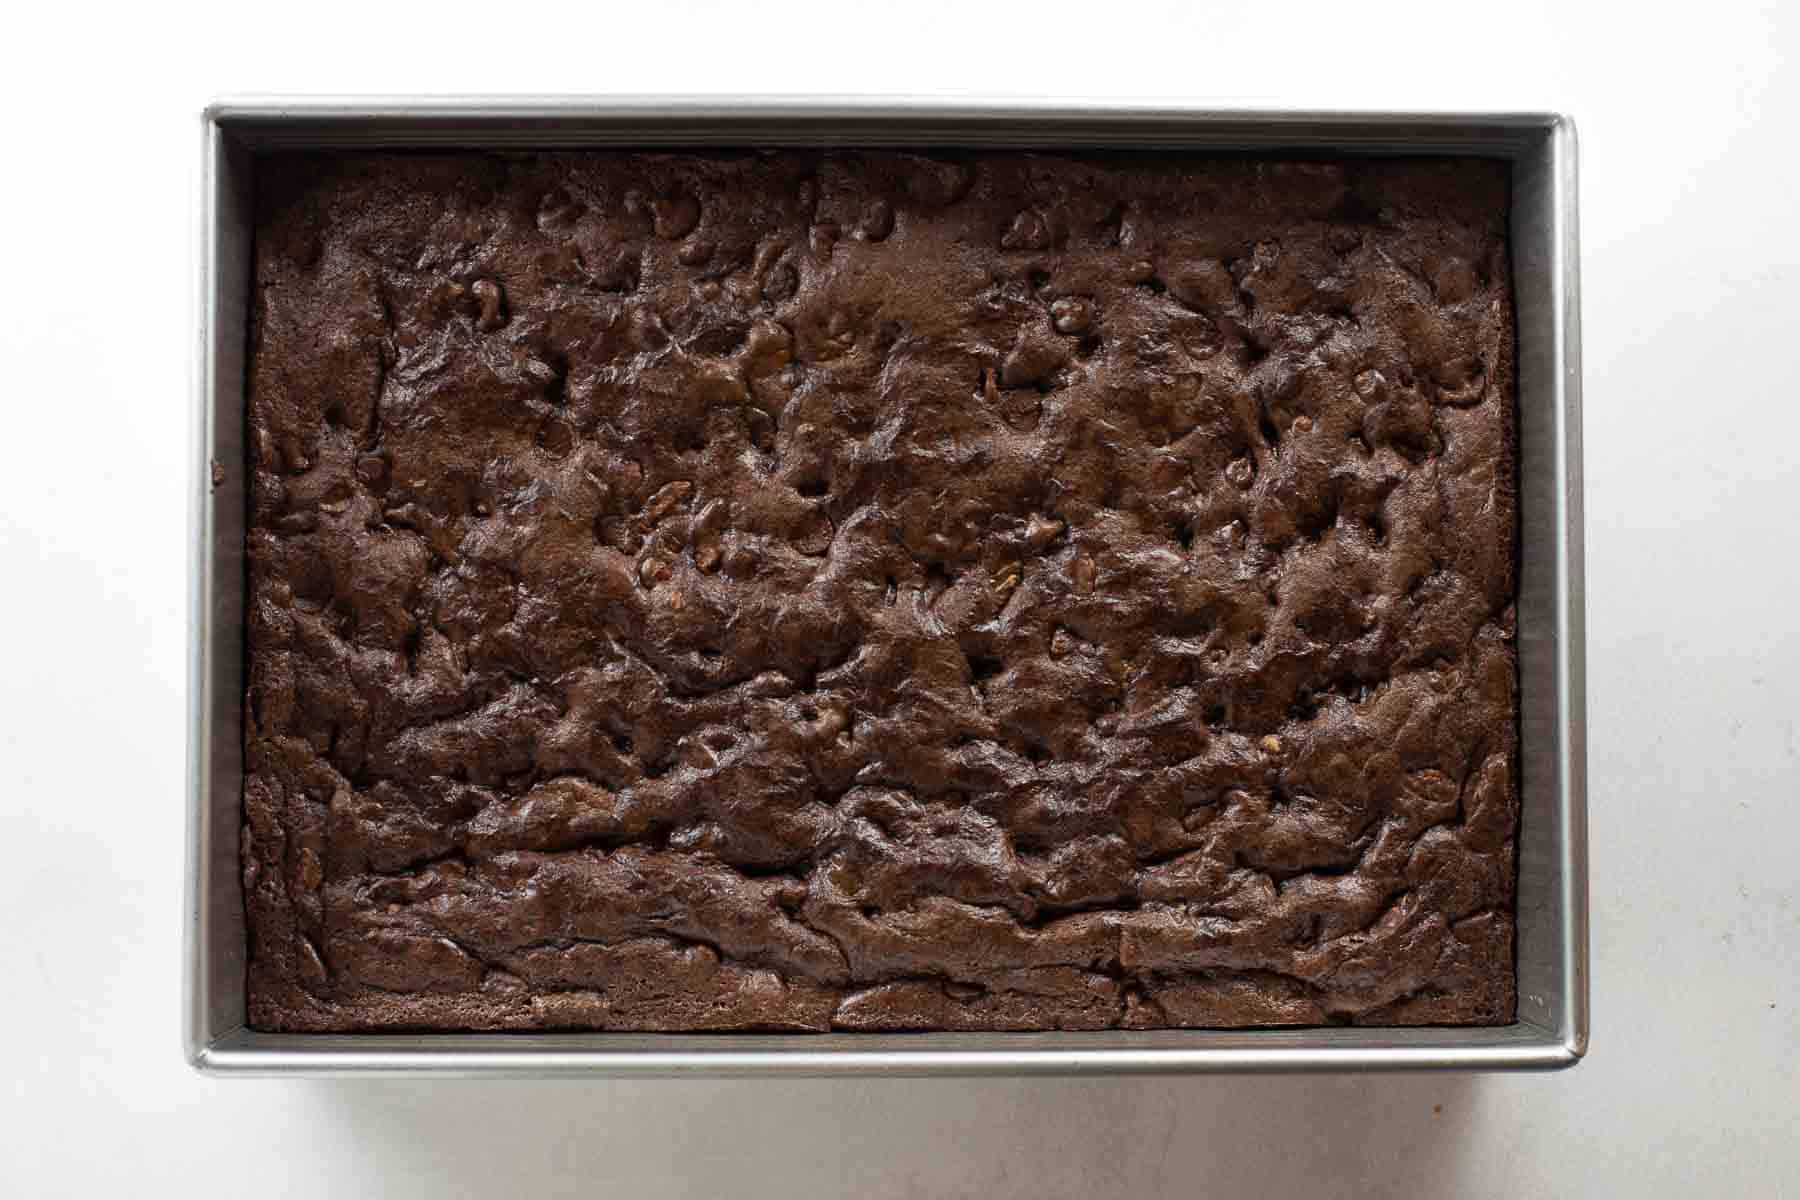 baked brownies cooling in pan